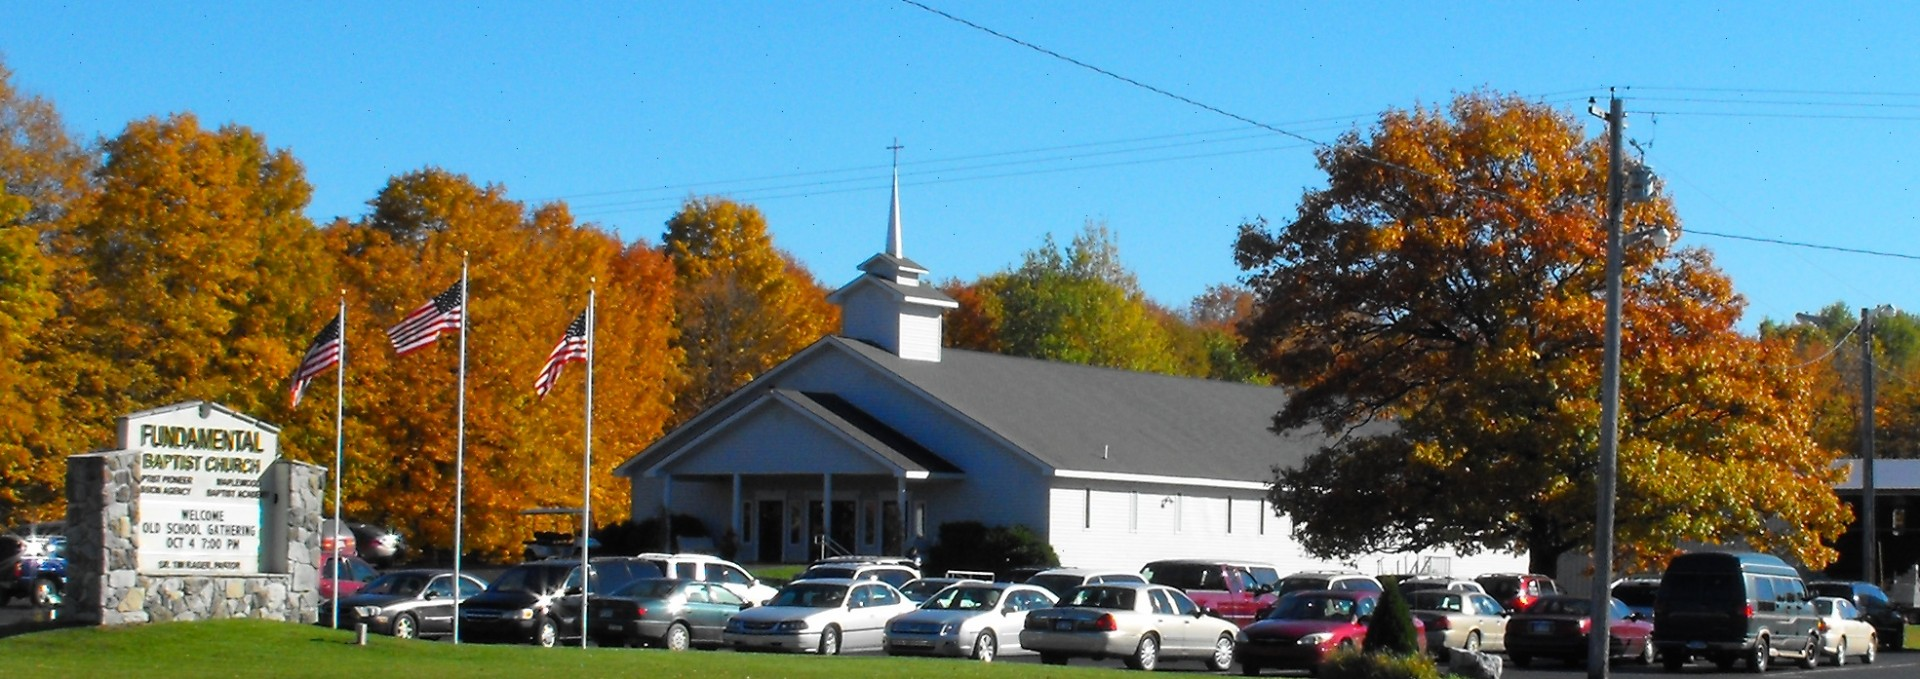 Fundamental Baptist Church